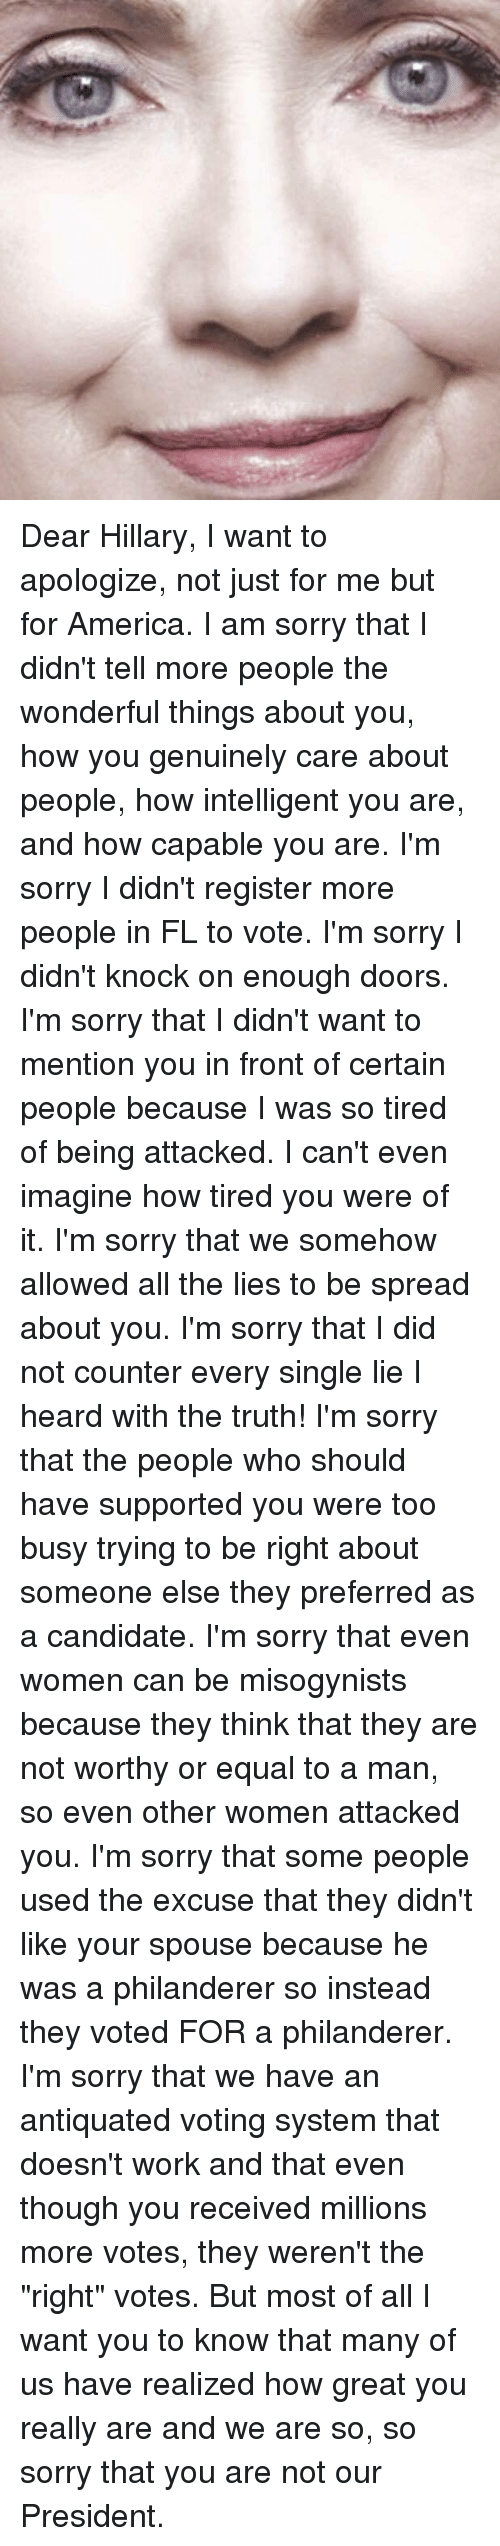 """Equalism: Dear Hillary, I want to apologize, not just for me but for America.  I am sorry that I didn't tell more people the wonderful things about you, how you genuinely care about people, how intelligent you are, and how capable you are.  I'm sorry I didn't register more people in FL to vote.  I'm sorry I didn't knock on enough doors.  I'm sorry that I didn't want to mention you in front of certain people because I was so tired of being attacked. I can't even imagine how tired you were of it.  I'm sorry that we somehow allowed all the lies to be spread about you. I'm sorry that I did not counter every single lie I heard with the truth!  I'm sorry that the people who should have supported you were too busy trying to be right about someone else they preferred as a candidate.  I'm sorry that even women can be misogynists because they think that they are not worthy or equal to a man, so even other women attacked you.  I'm sorry that some people used the excuse that they didn't like your spouse because he was a philanderer so instead they voted FOR a philanderer.  I'm sorry that we have an antiquated voting system that doesn't work and that even though you received millions more votes, they weren't the """"right"""" votes. But most of all I want you to know that many of us have realized how great you really are and we are so, so sorry that you are not our President."""